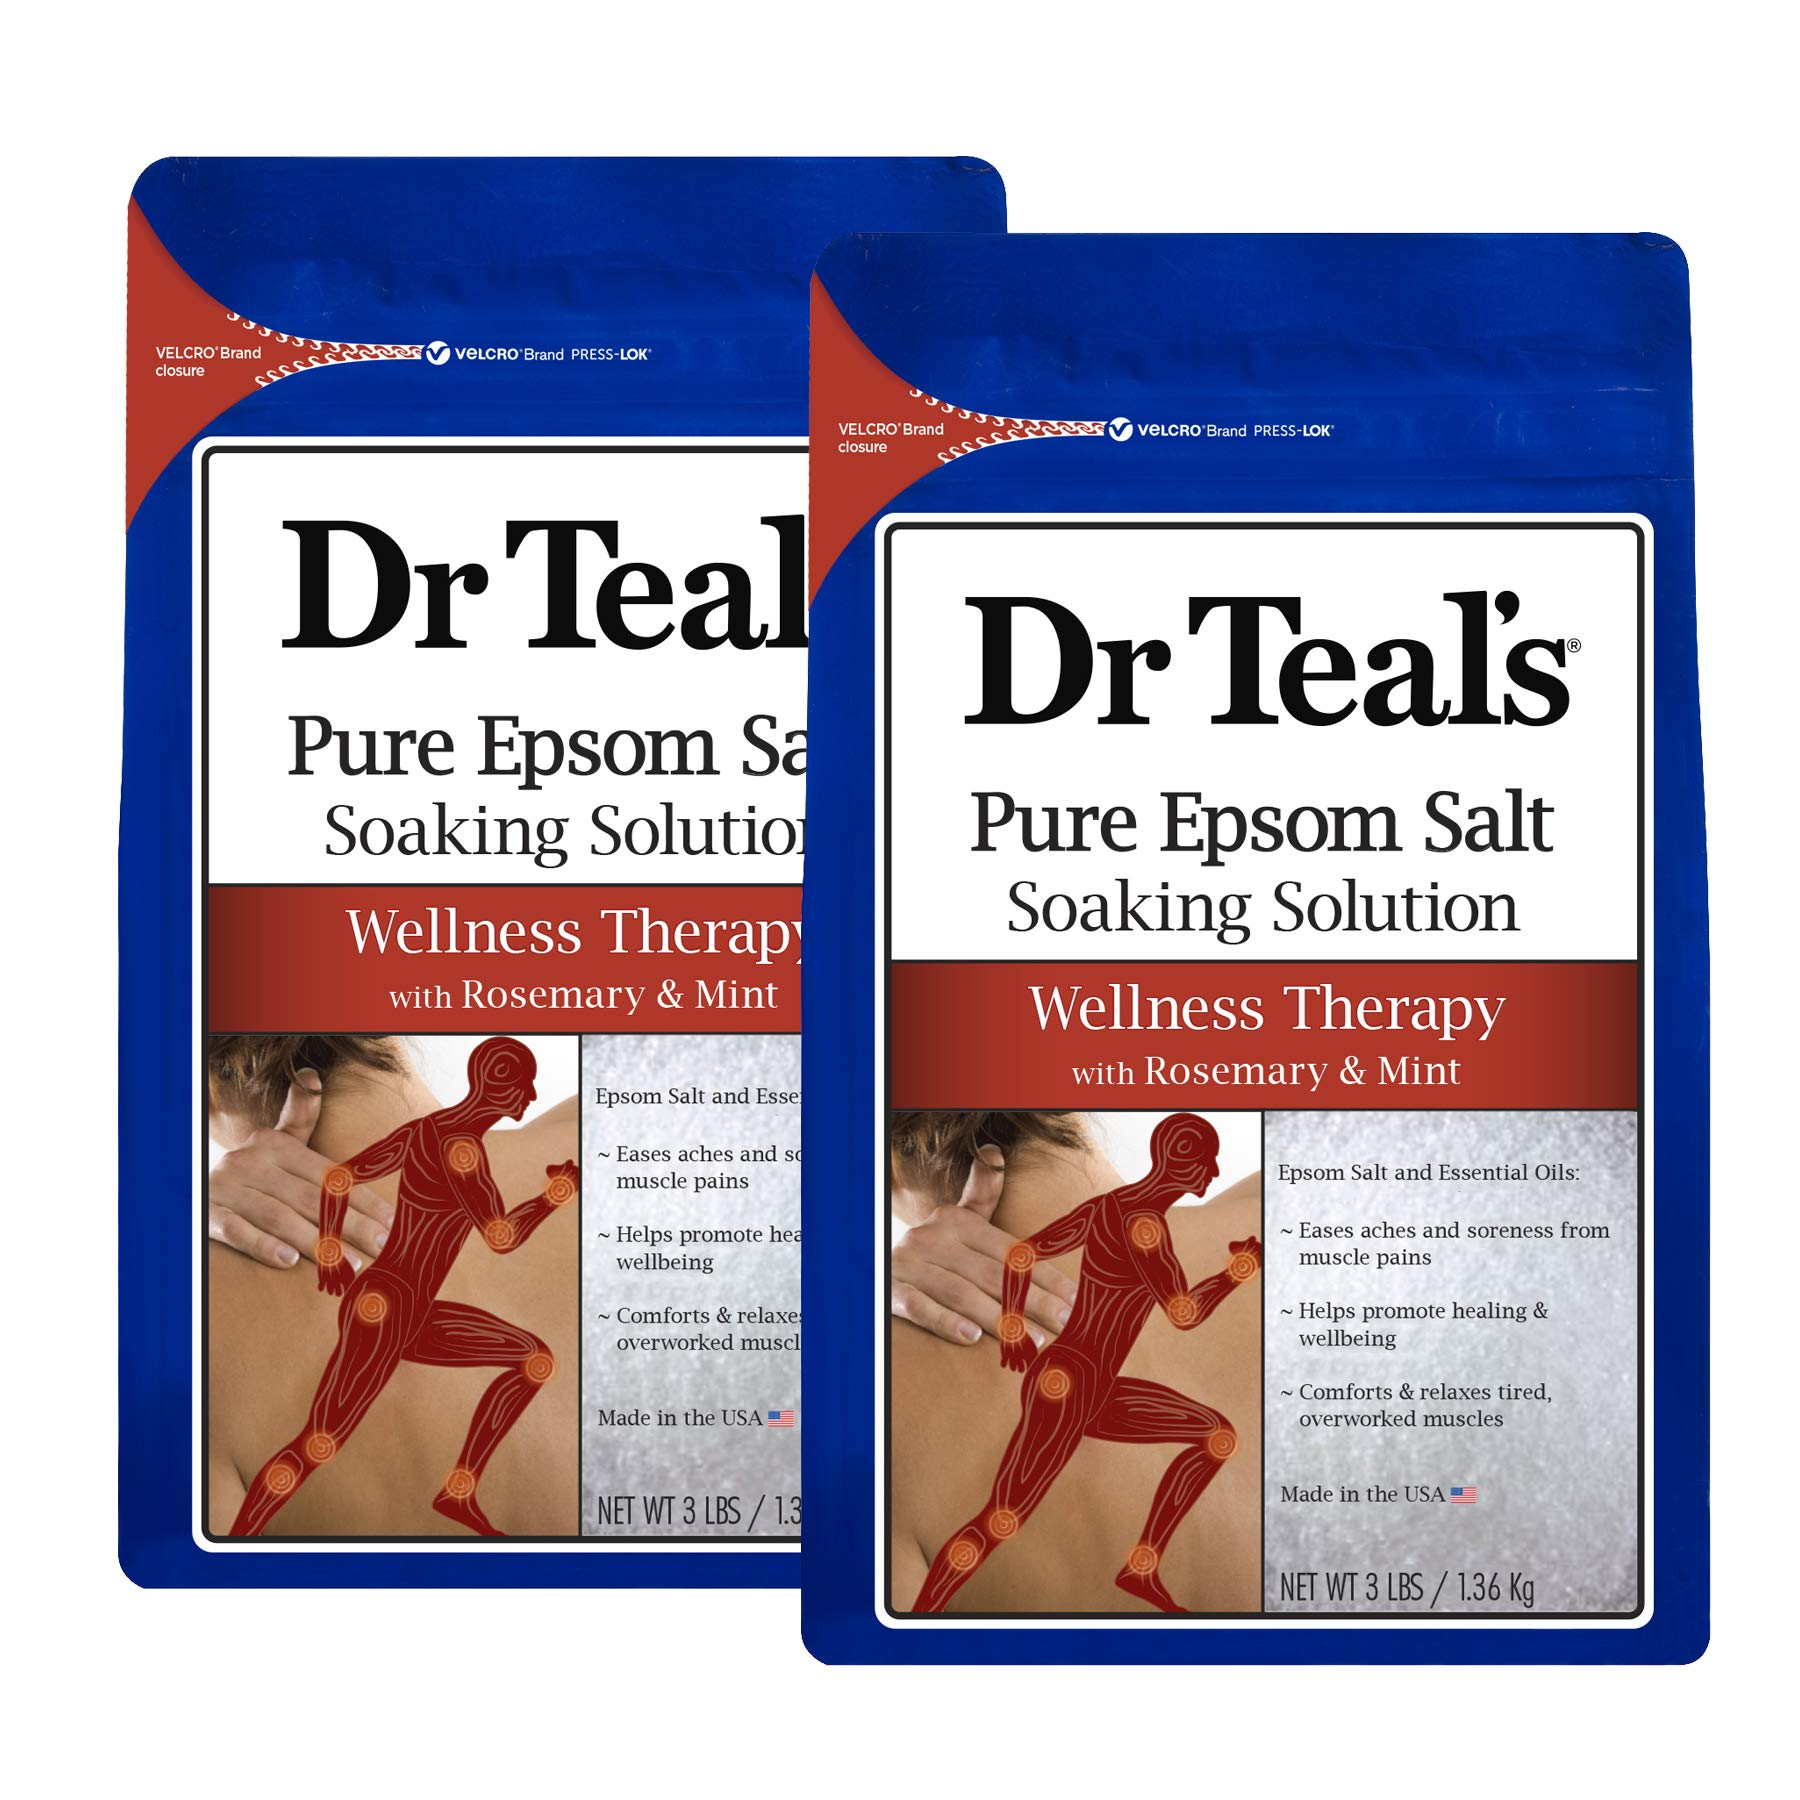 Dr. Teal's Epsom Salt Soaking Solution, Therapy & Relief with Rosemary and Mint, 48 Ounce, Pack of 2 by Dr. Teal's